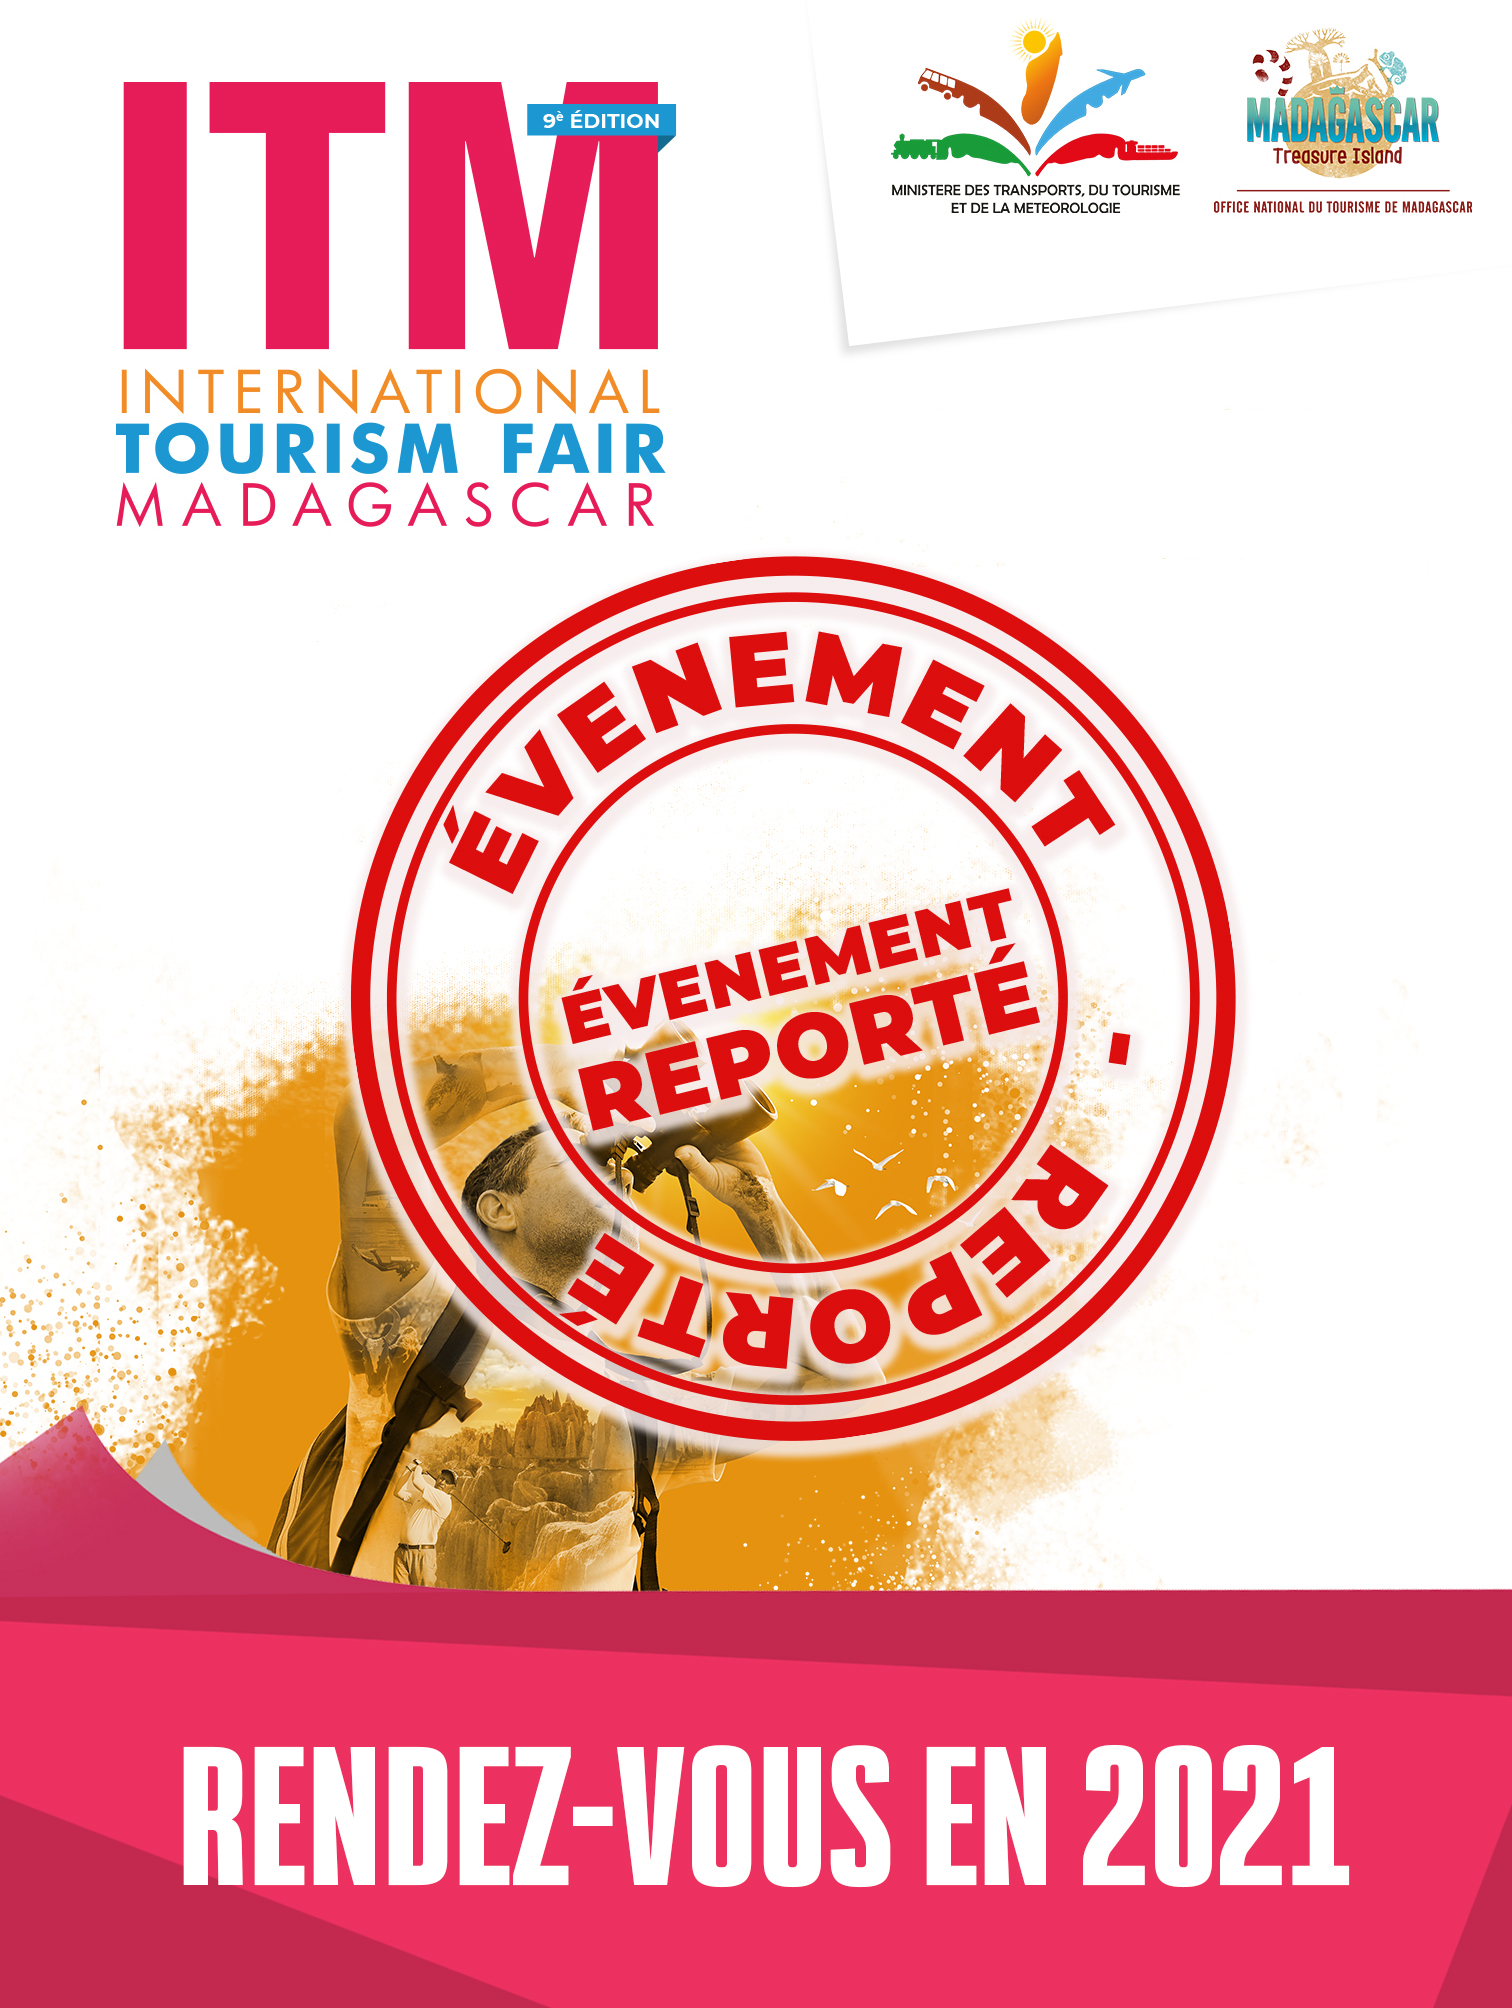 ITM (International Tourism Fair Madagascar) – Reporté - 0